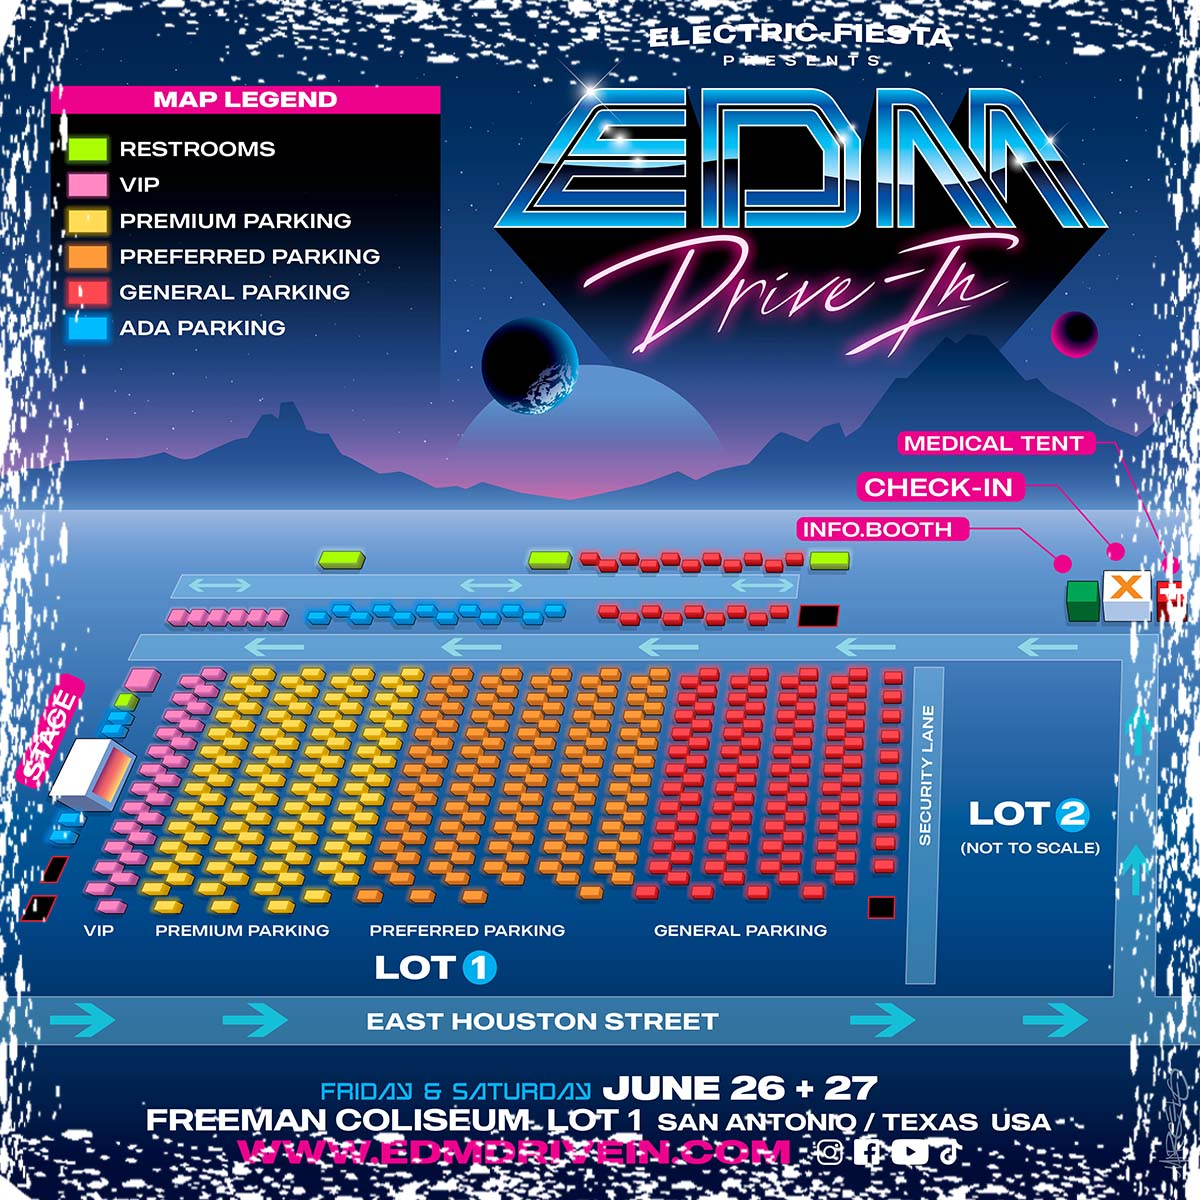 EDM Drive-In Parking Map